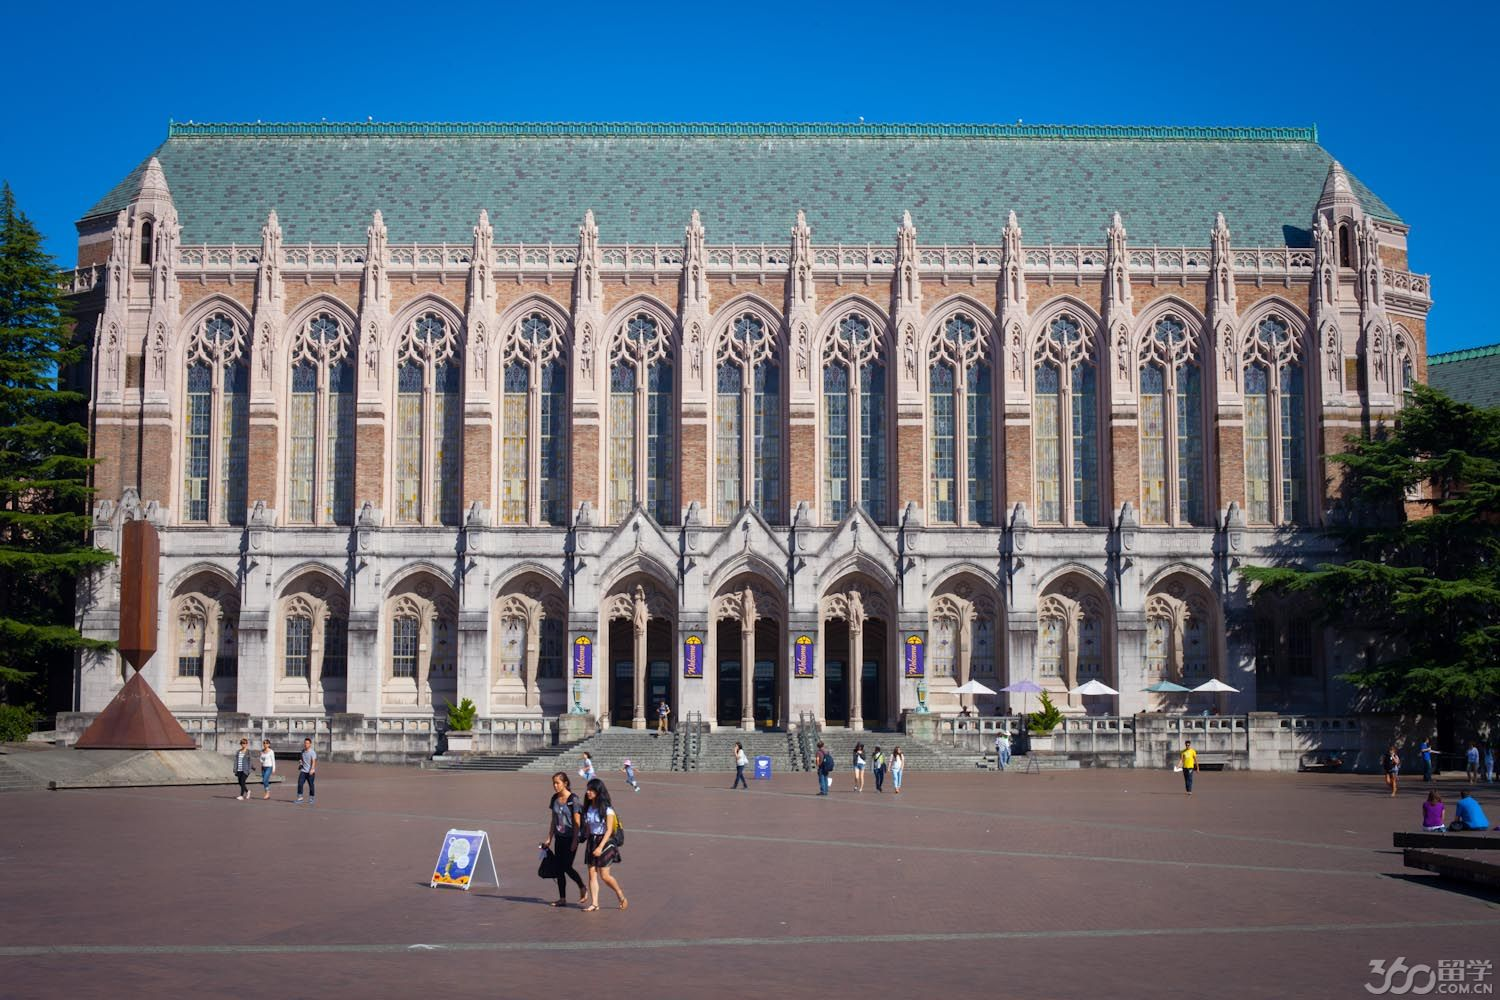 university of washington essays Free washington university papers, essays, and research papers.